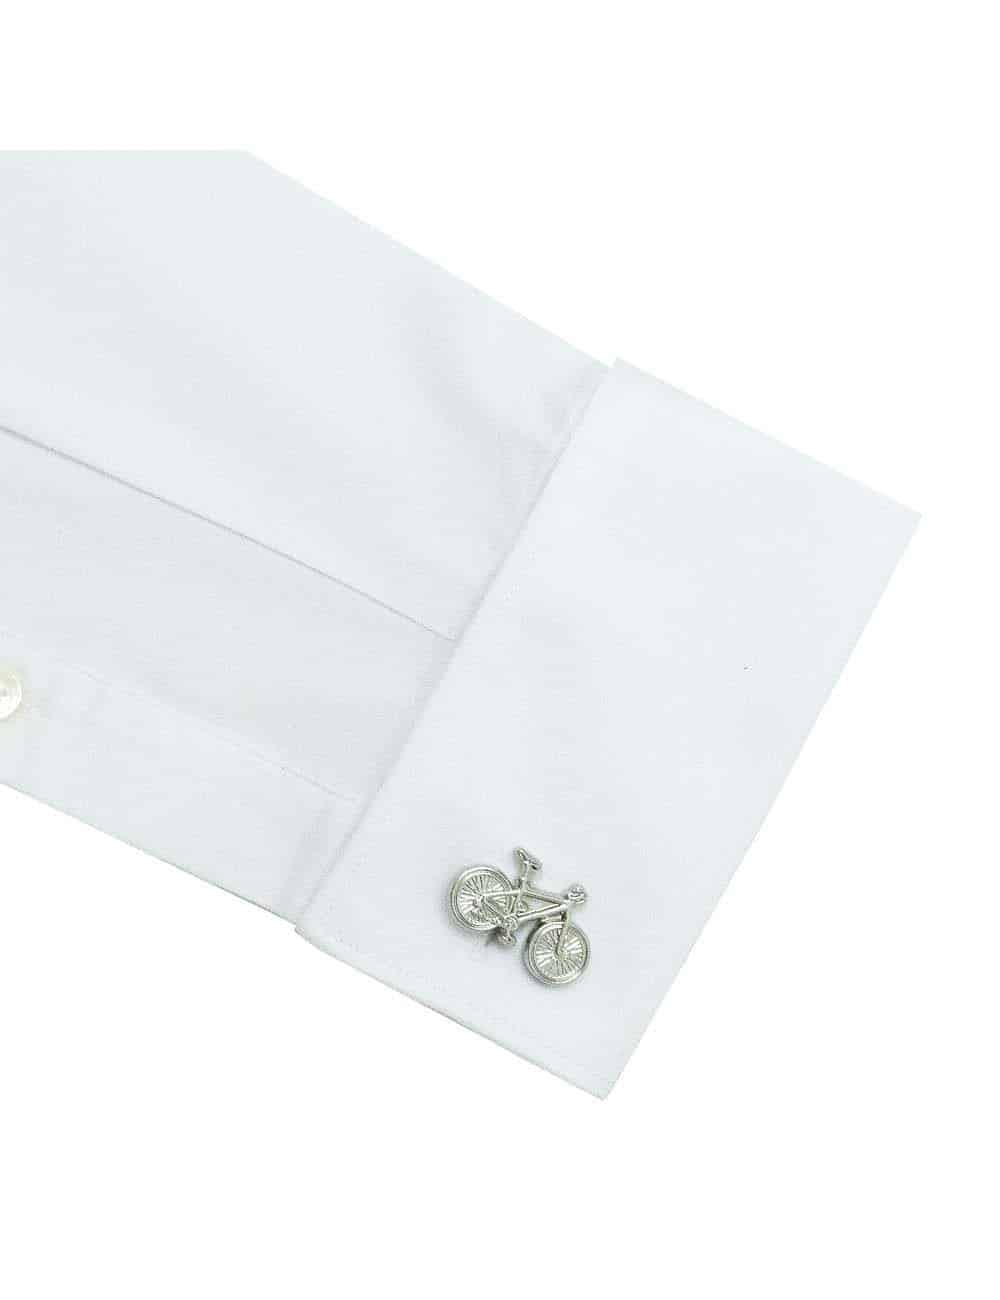 Slim Fit 100% Premium Cotton Solid White Wing Tip Collar Double Cuff Tuxedo Shirt with Hidden Buttons and Long Lasting White Finishing SF32DT1.NOS